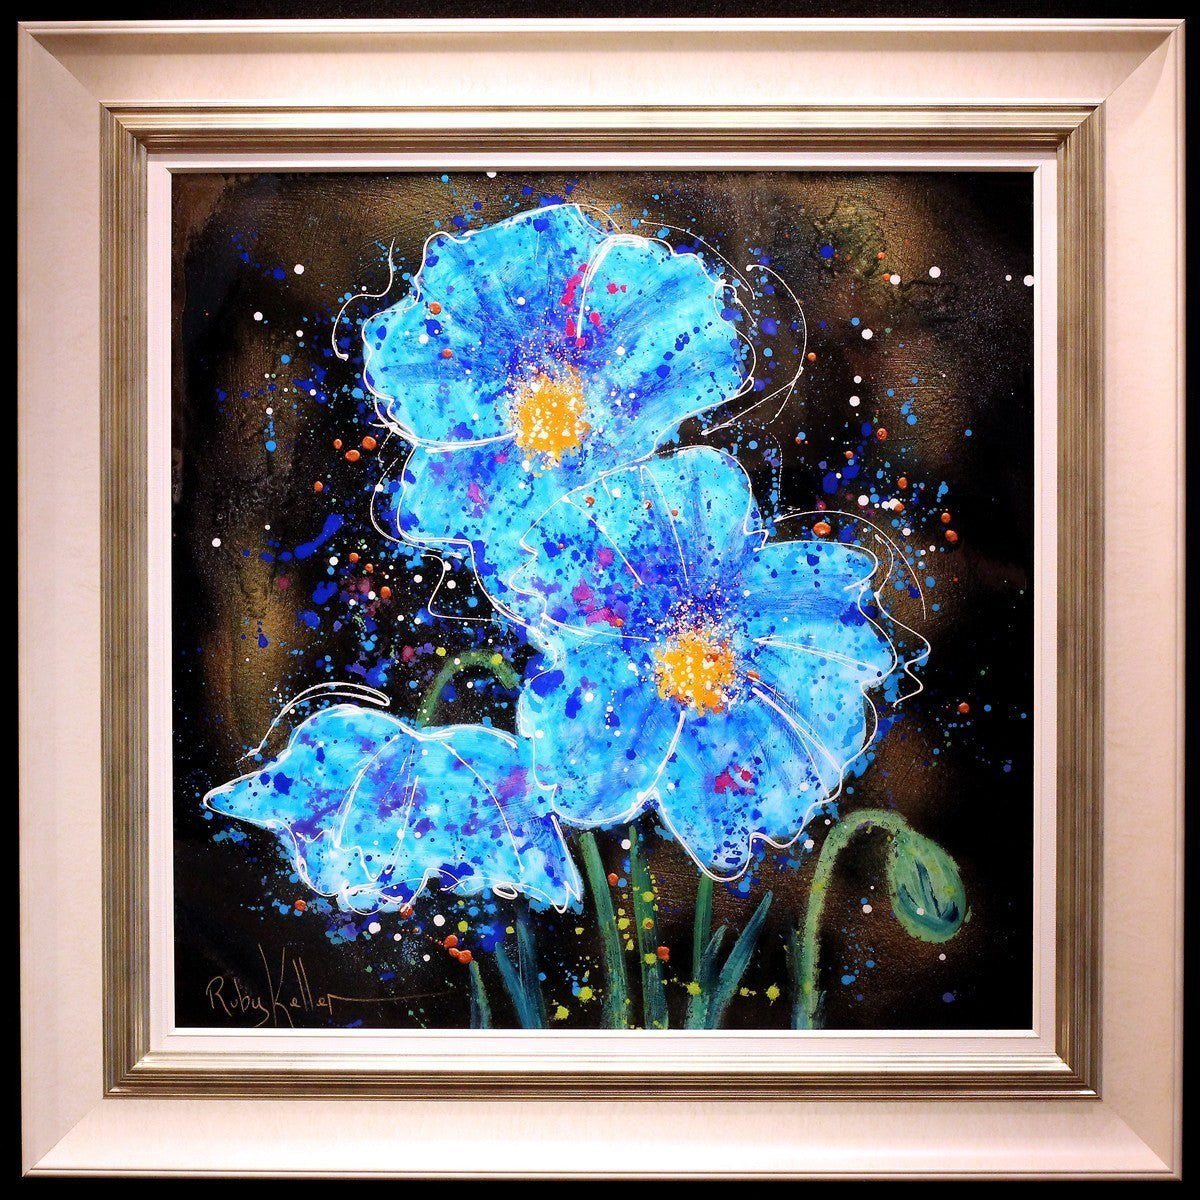 Blue Blooms II - SOLD Ruby Keller